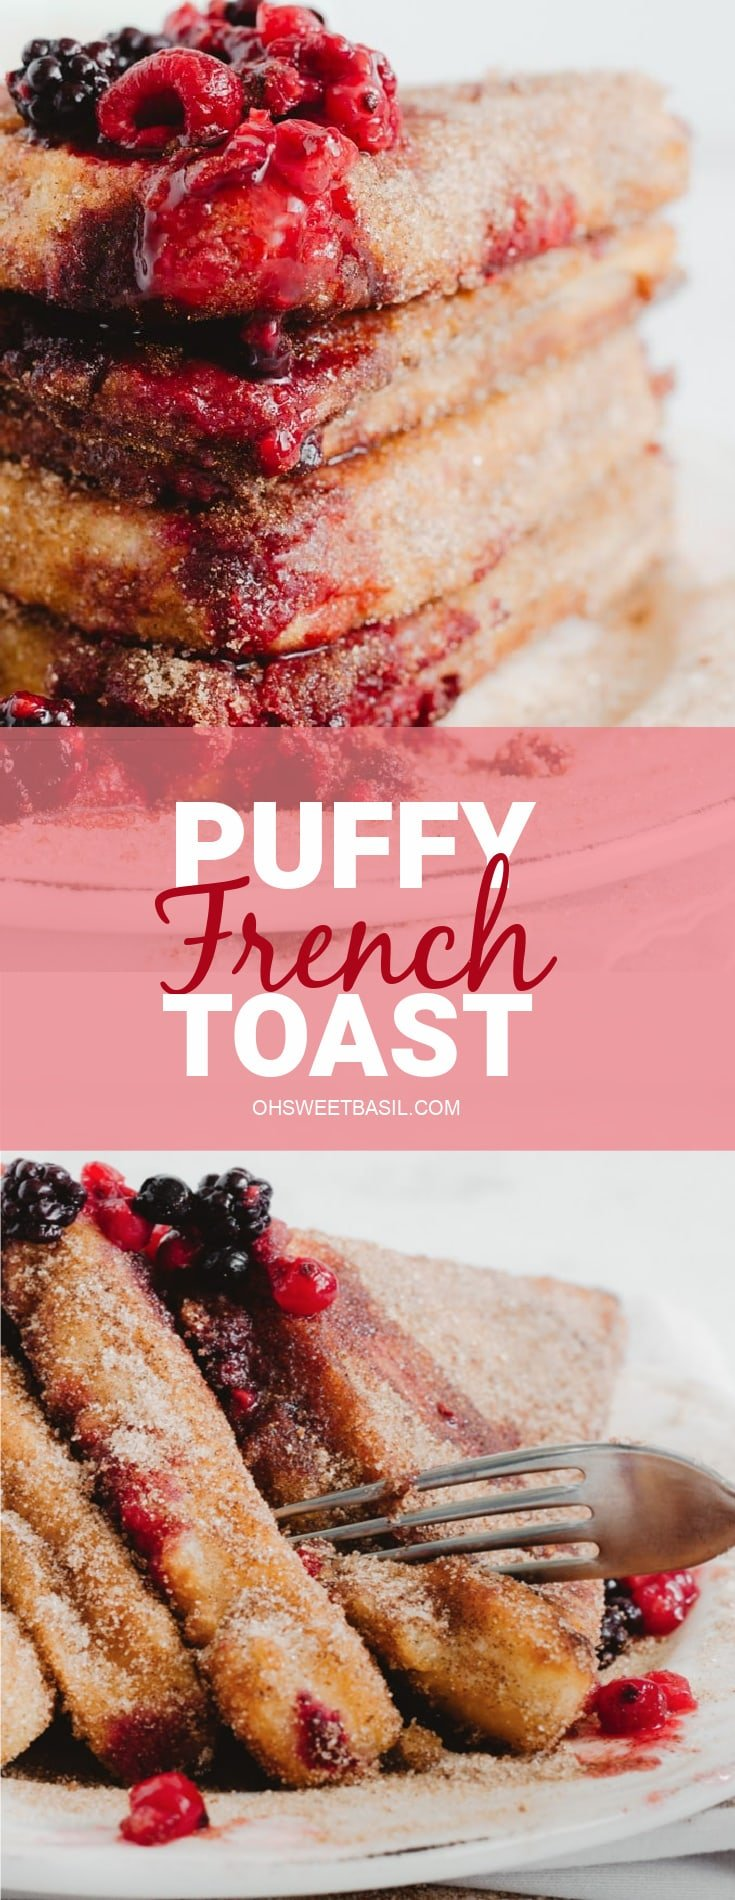 Puffy French Toast coated in cinnamon sugar and berries on top